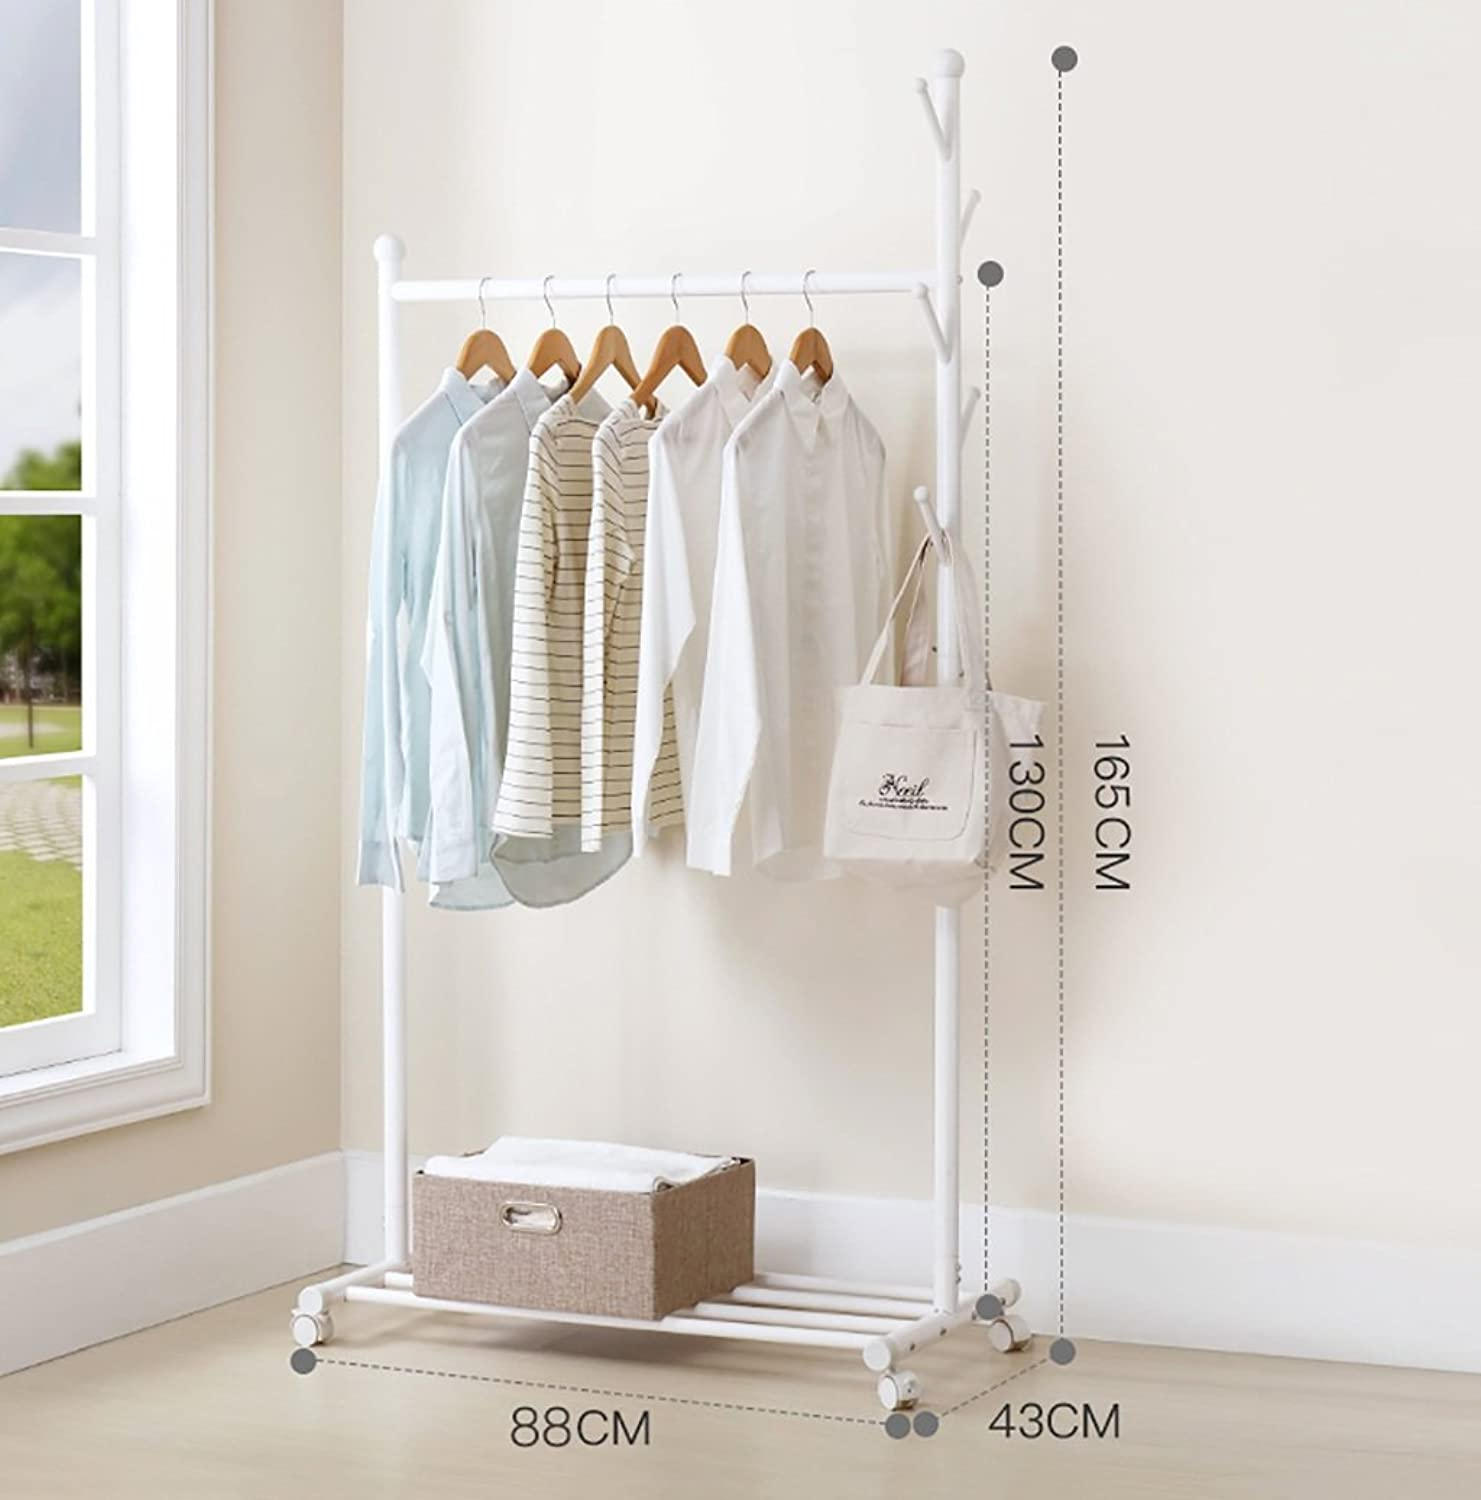 Metal Coat Rack with Hanging Hooks Coat Stand Hats Bags Multi-Purpose Storage shoes Bench Stand with Top Rod for Home Office Hallway Bedroom White 88  43  165CM